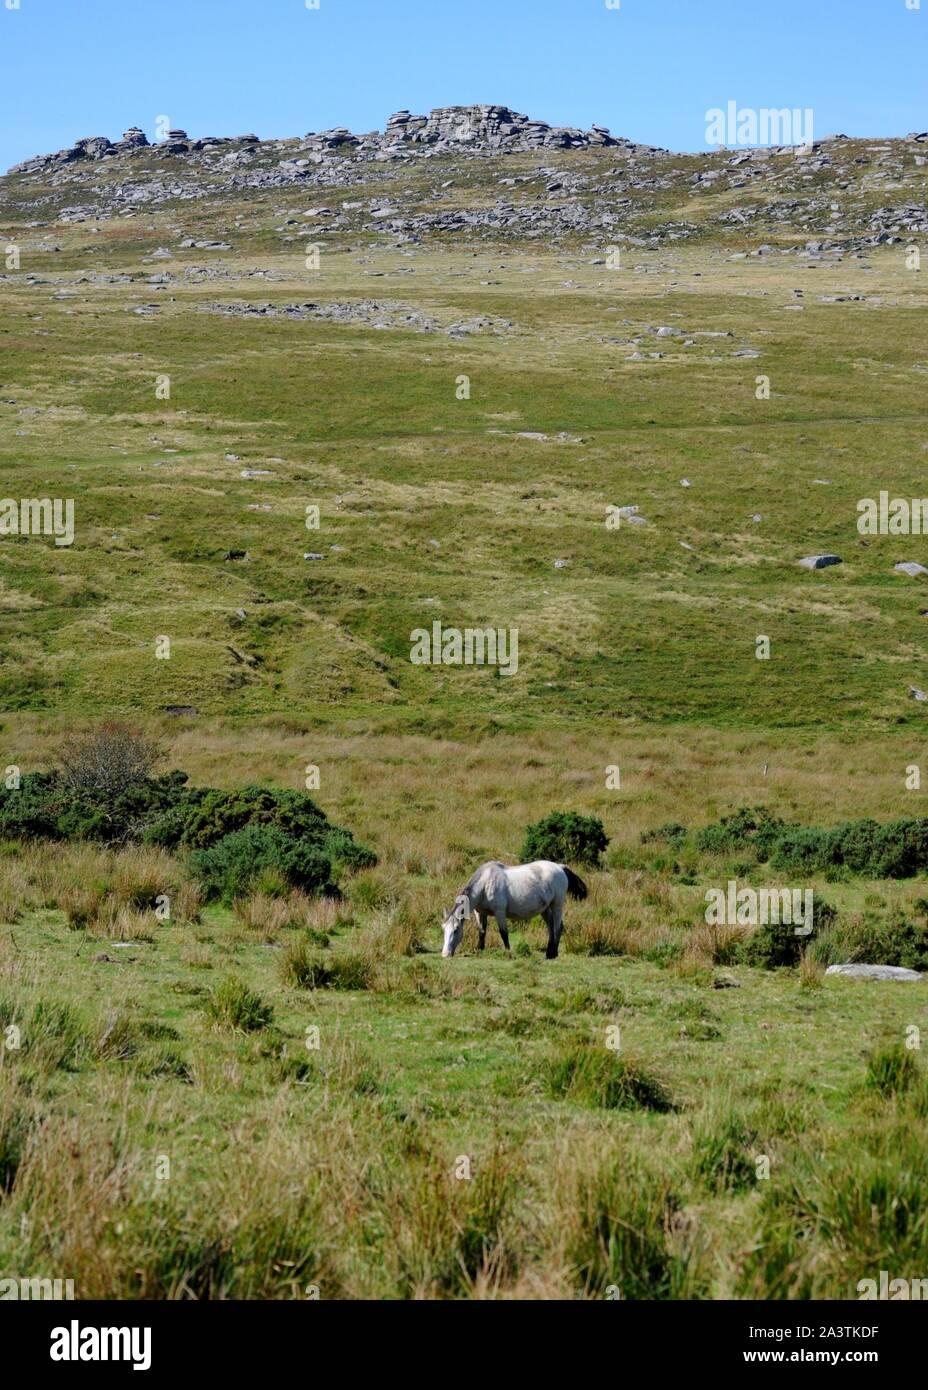 White horse grazing on Bodmin Moor with Rough Tor in background near Camelford, Cornwall, UK. Stock Photo